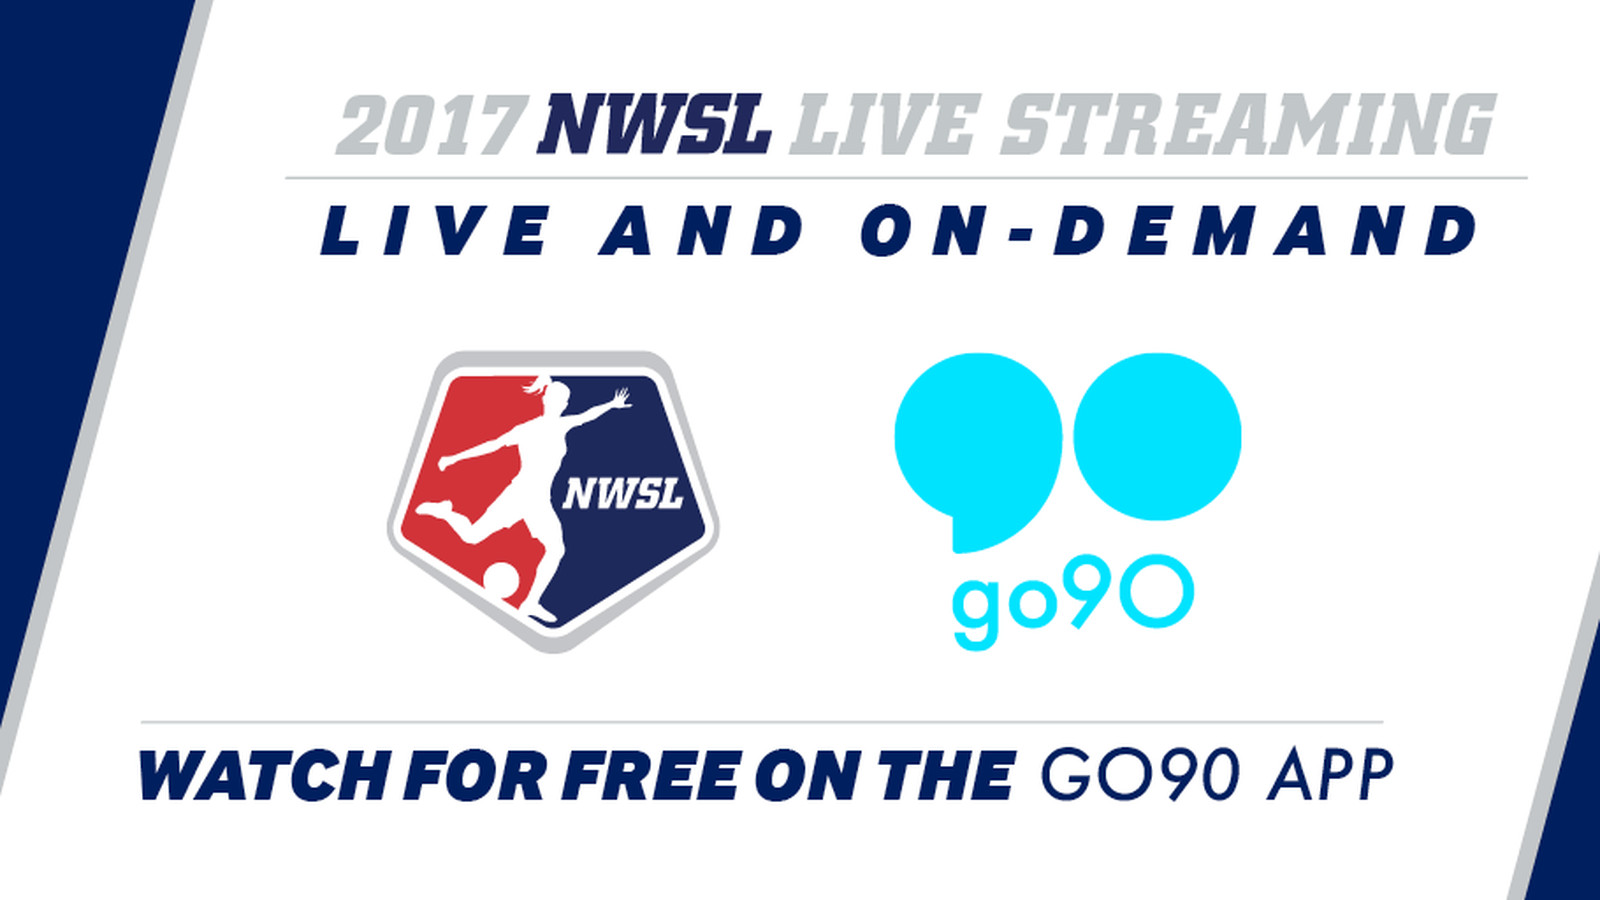 Nwsl_go90.0